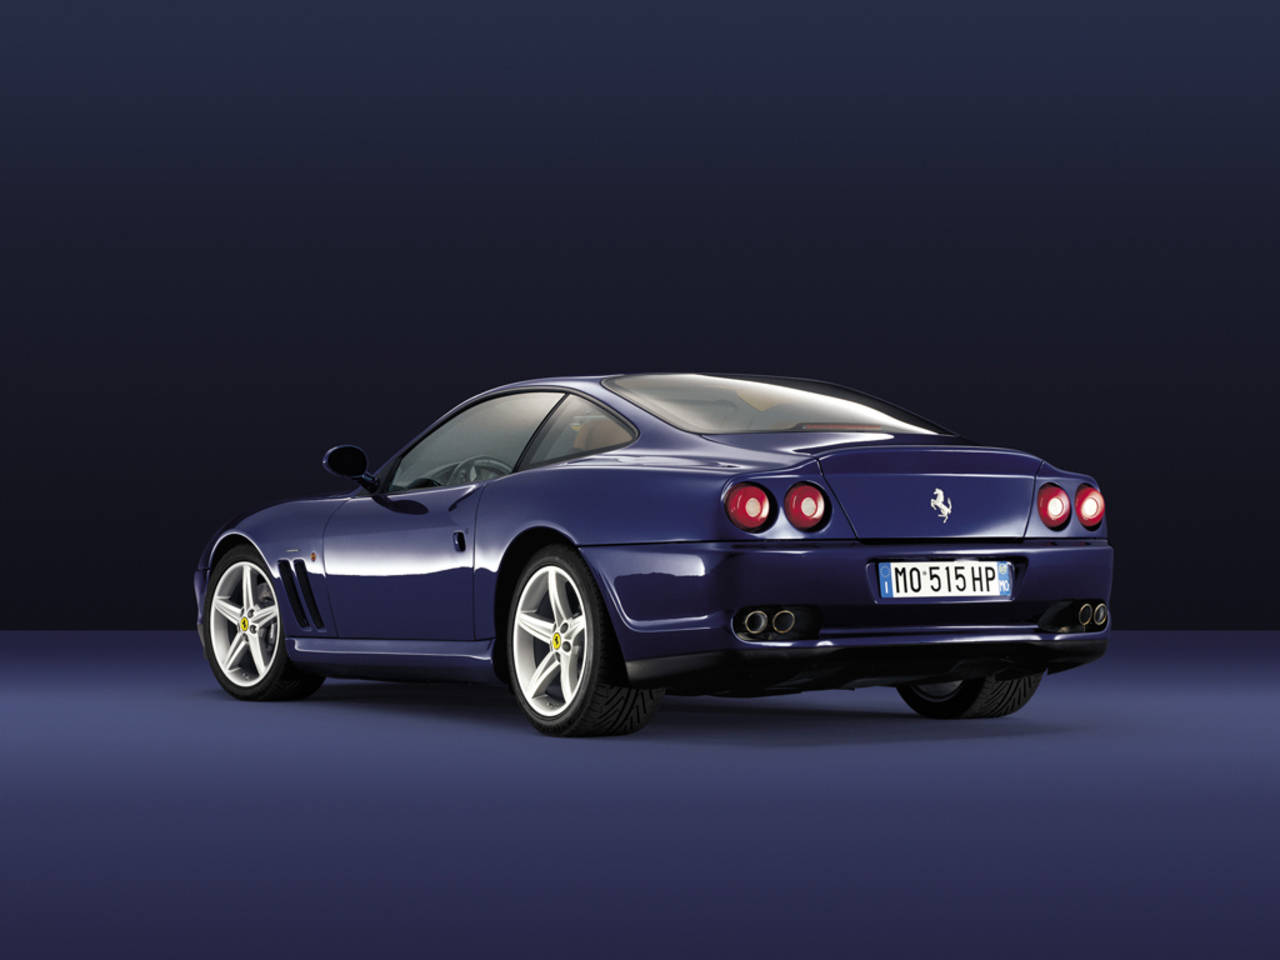 575M Maranello, 3/4 rear view